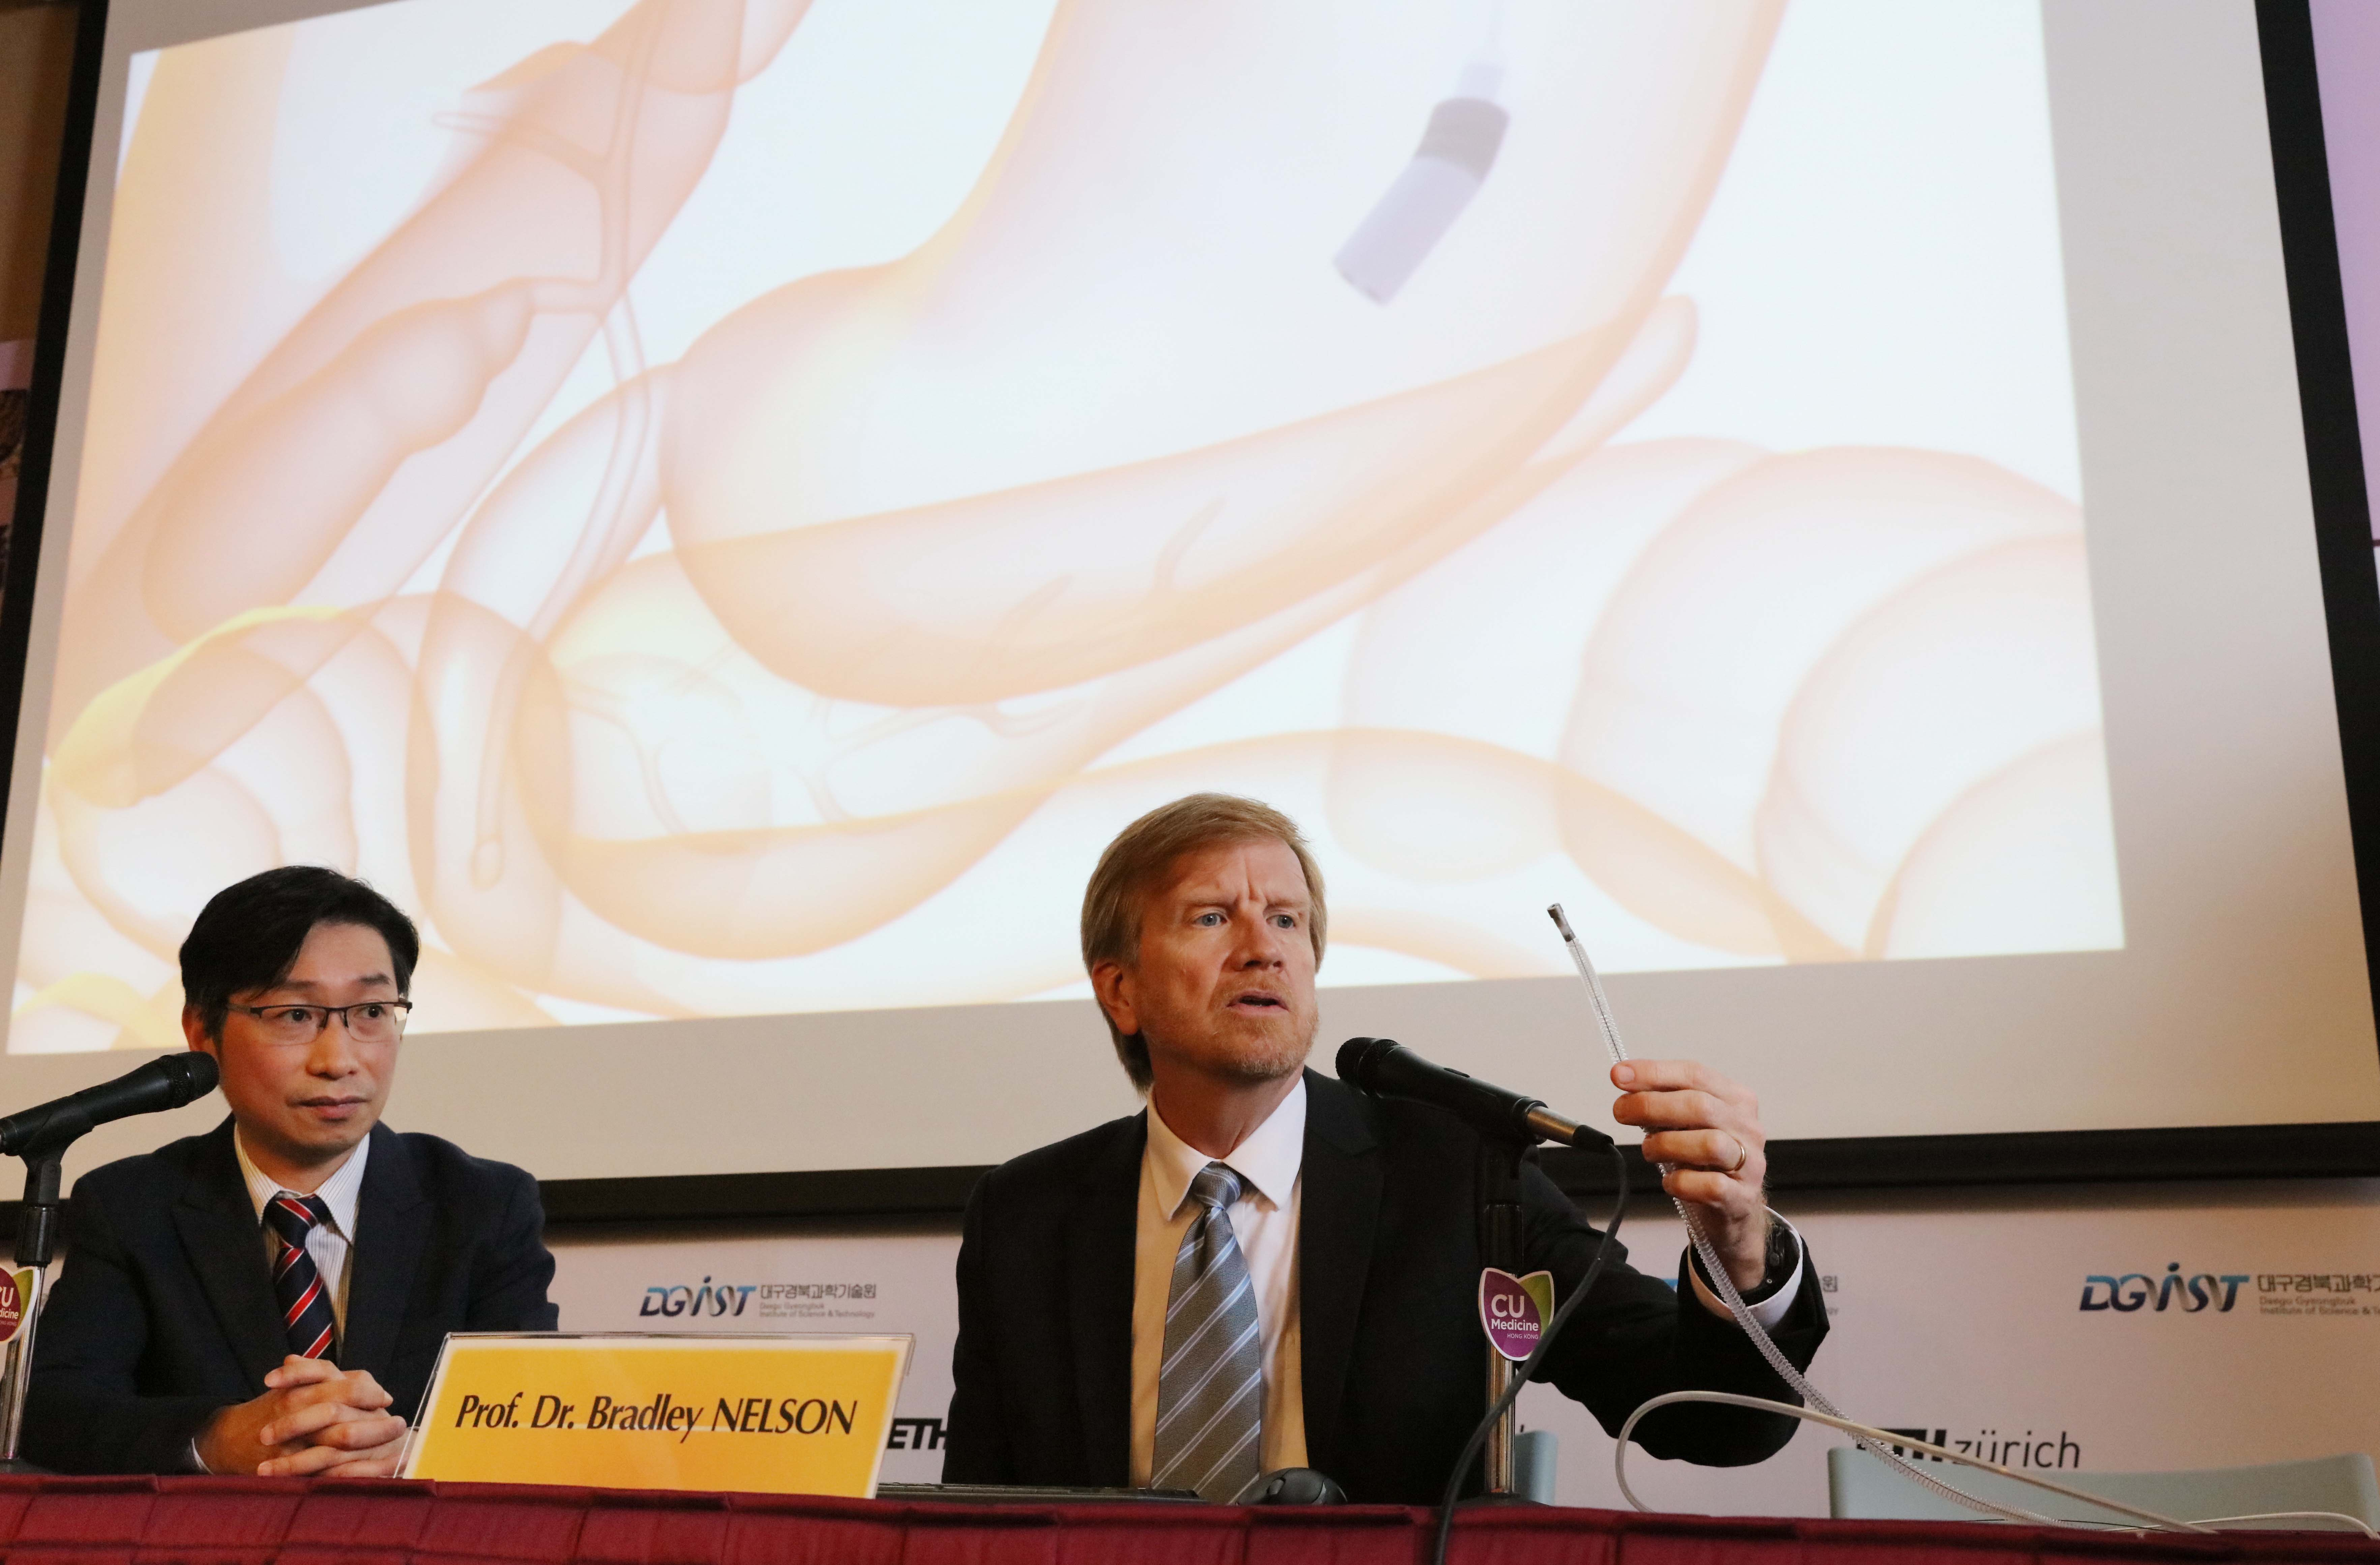 Prof. Dr. Bradley NELSON (right) displays animation of an innovative magnetic guided endoscope for small intestine check-up.